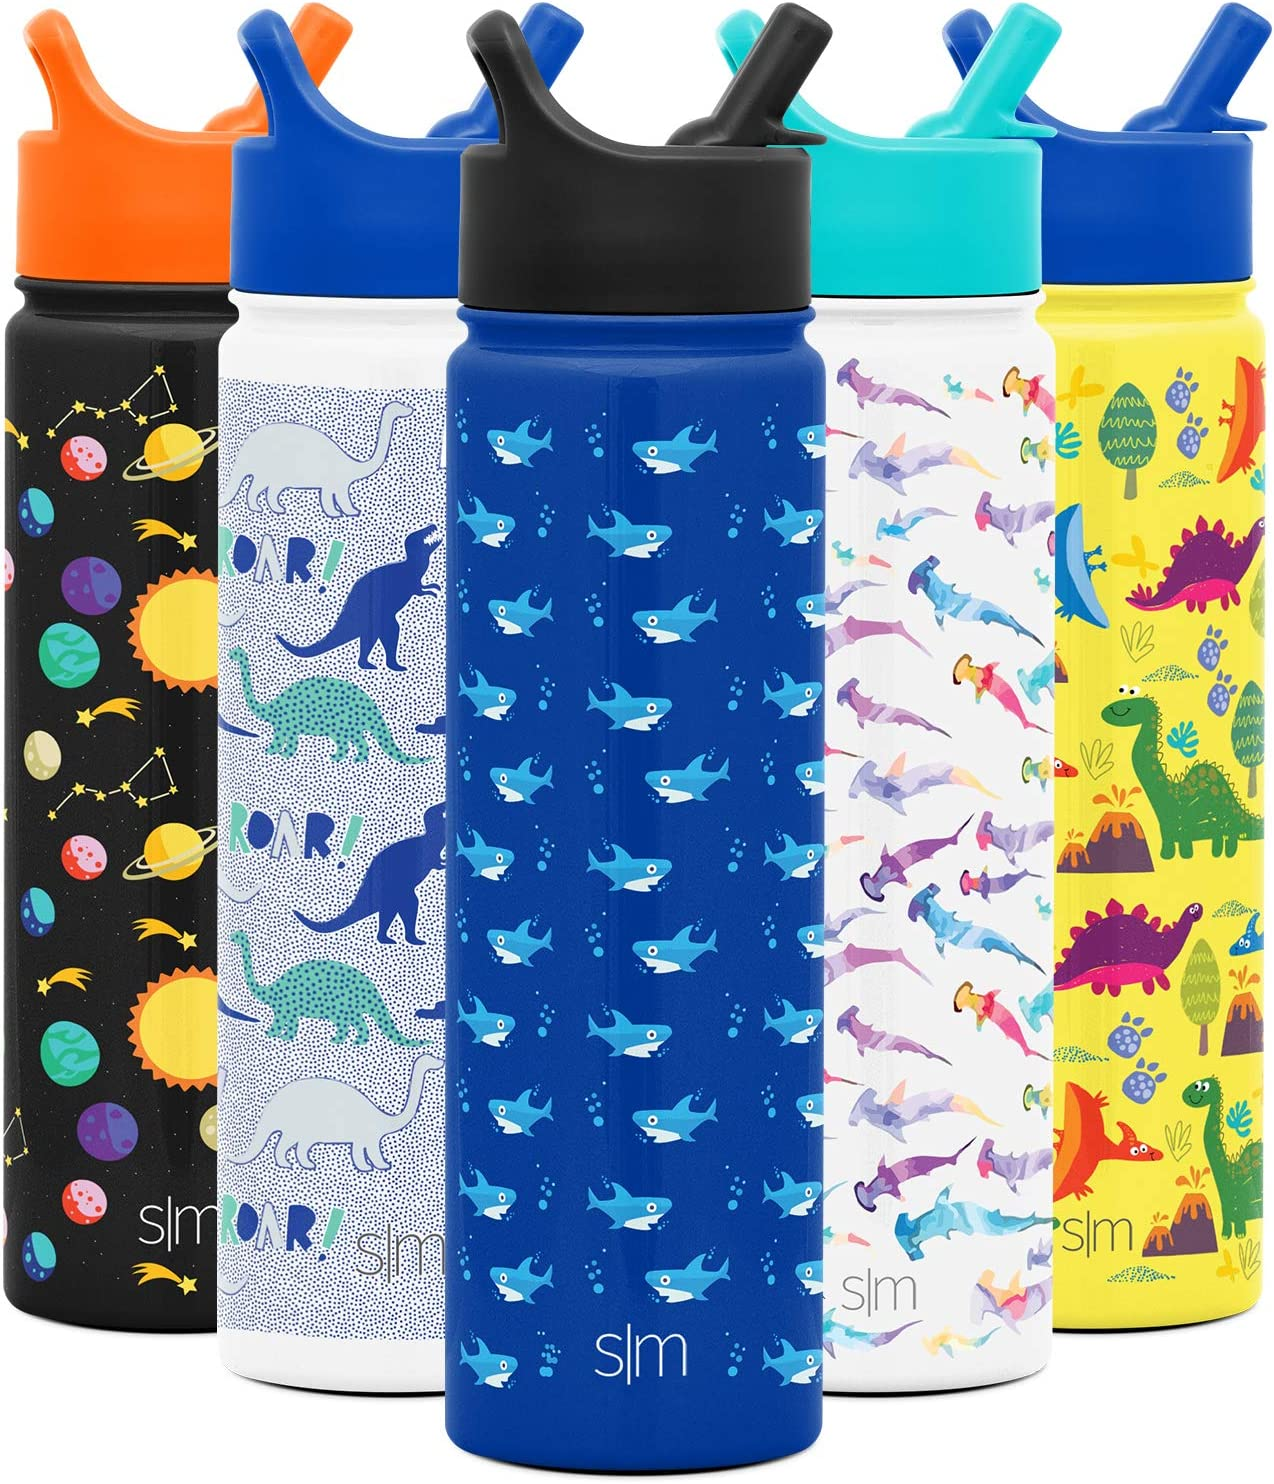 Simple Modern 22oz Summit Kids Water Bottle Thermos with Straw Lid - Dishwasher Safe Vacuum Insulated Double Wall Tumbler Travel Cup 18/8 Stainless Steel -Shark Bite